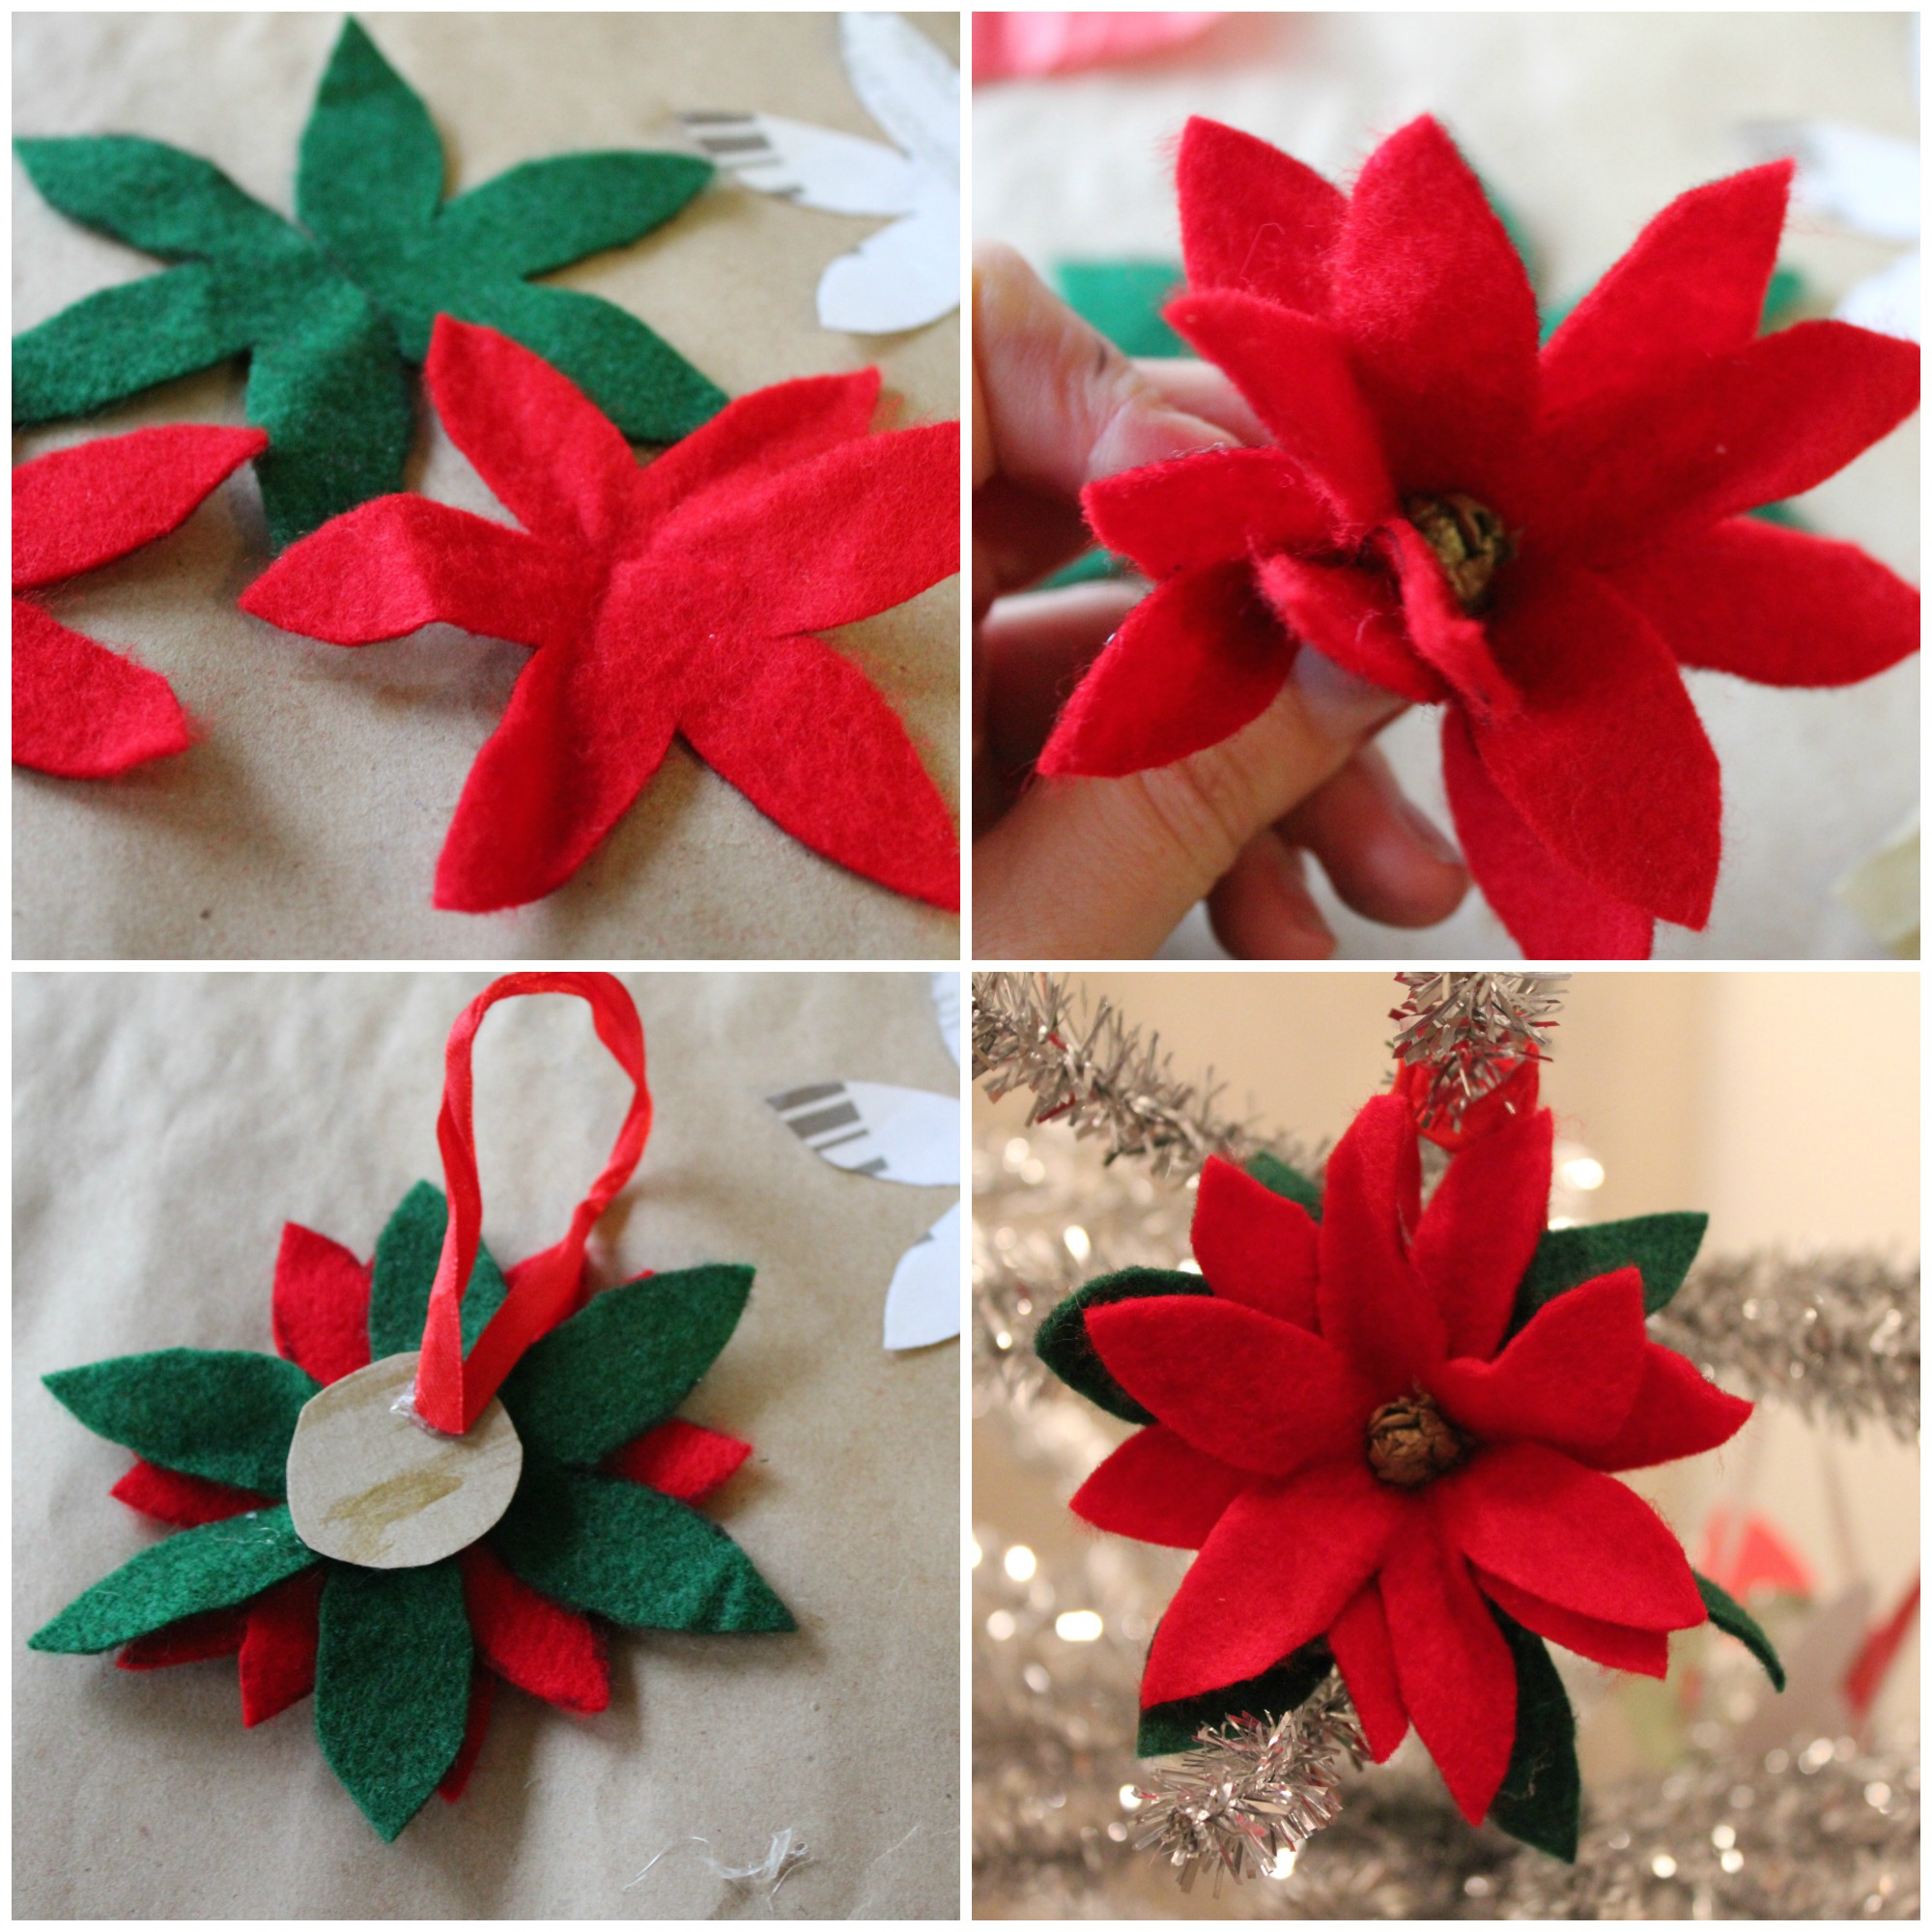 Diy christmas ornaments inspired by world cultures multicultural poinsetta ornament collage solutioingenieria Gallery